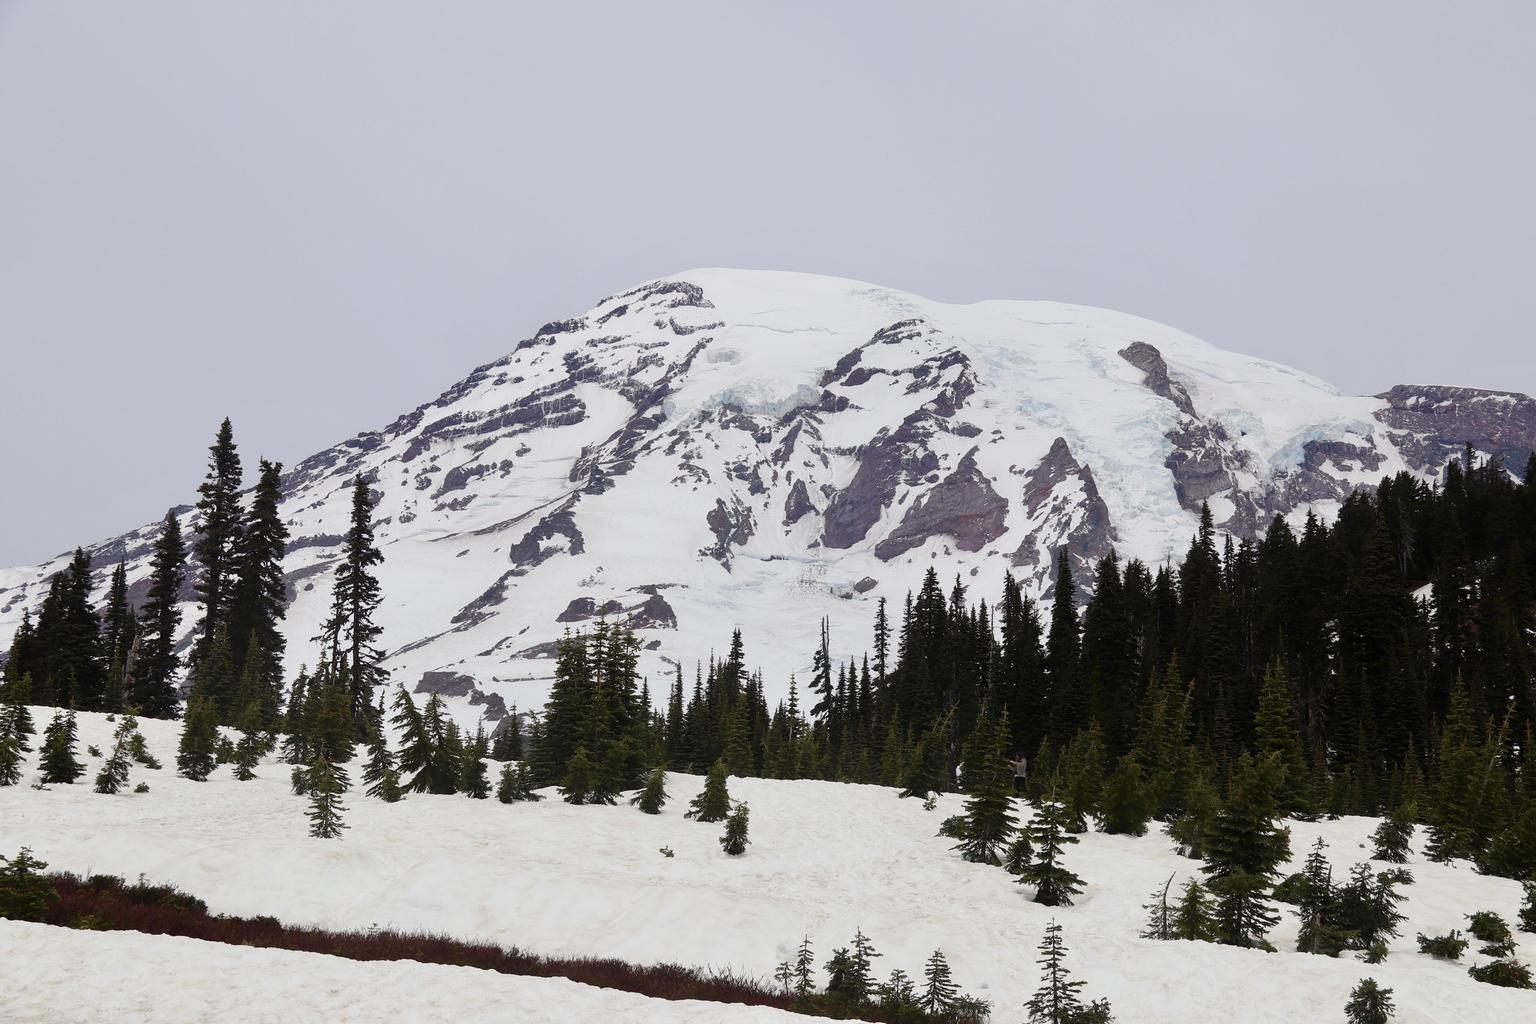 Mt. Rainier Day Trip from Seattle